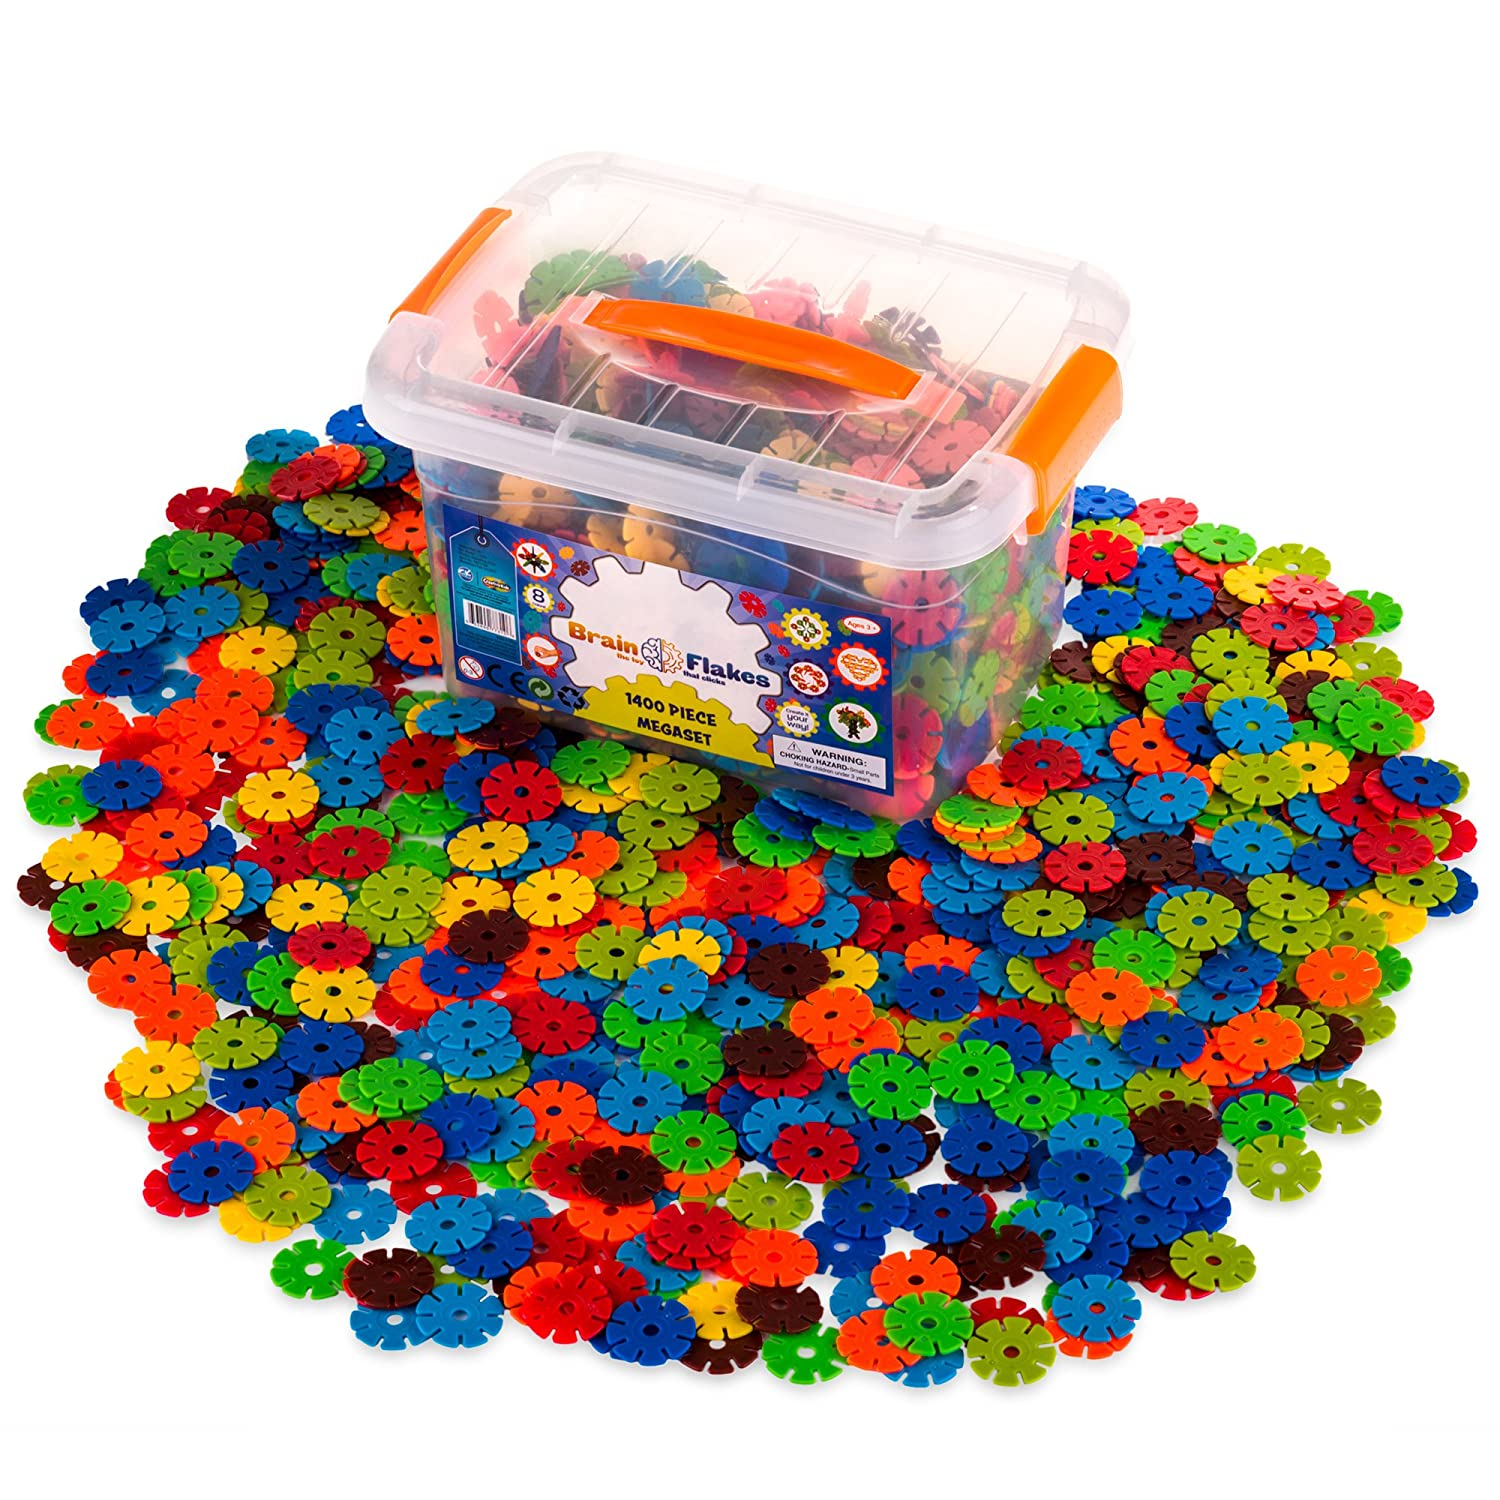 Creative Kids Brain Flakes – Large 1400 Piece Interlocking Plastic Disc Set for Safe, Fun, Creative Building – Educational STEM Construction Toy for Boys & Girls - Non Toxic – Ages 3 and Up Review